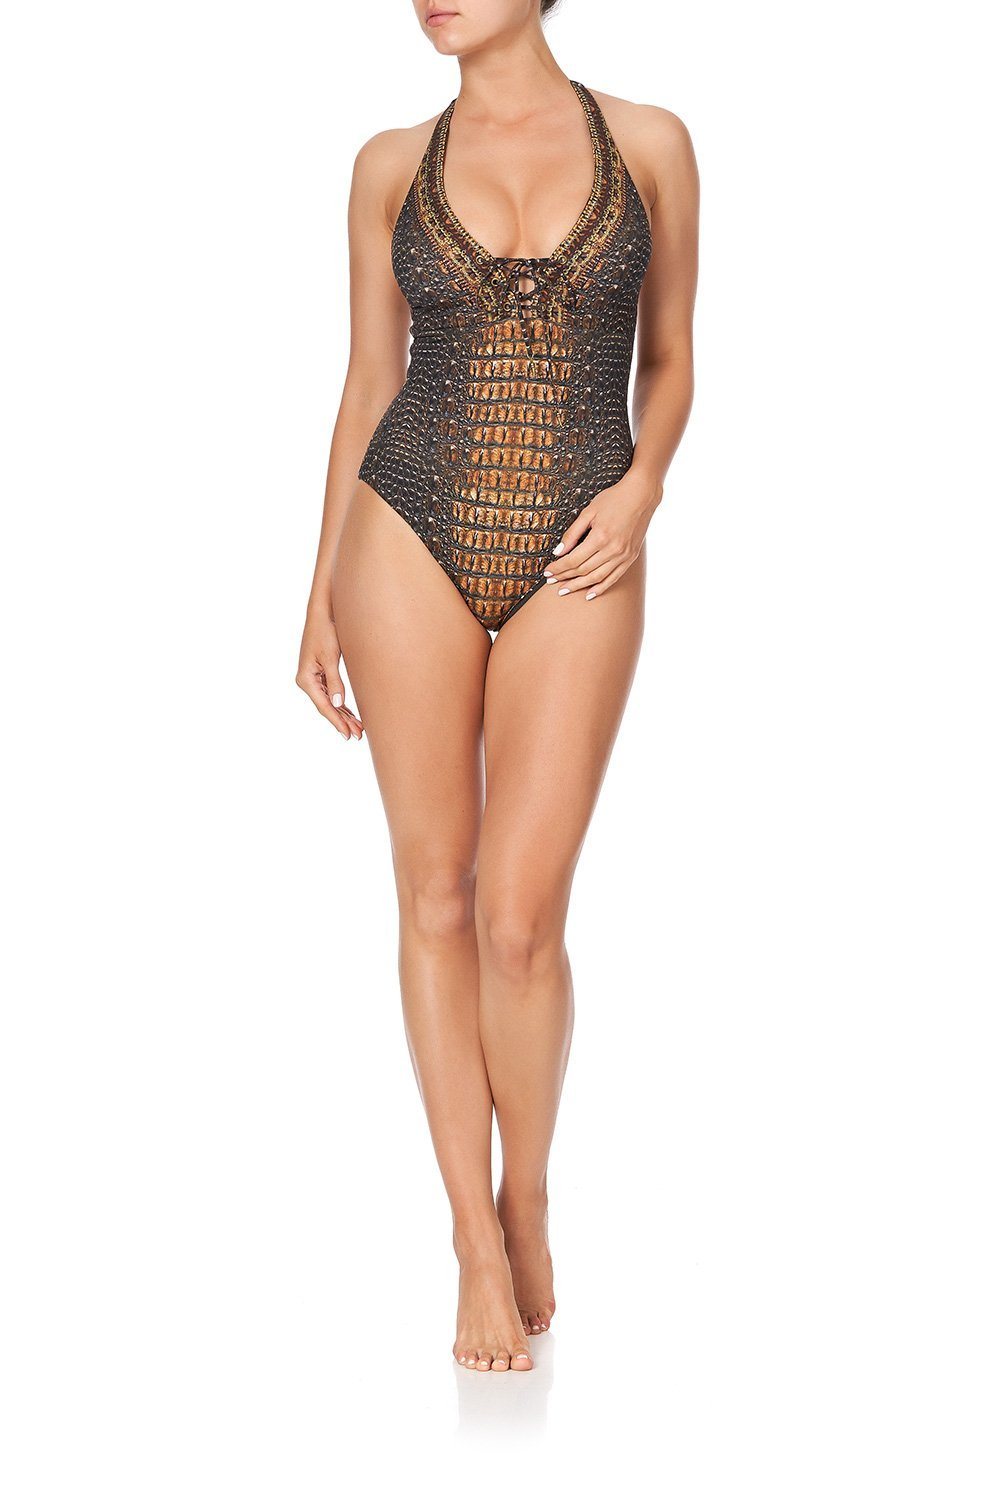 HALTER ONE PIECE WITH EYELETS CROCODILE ROCK